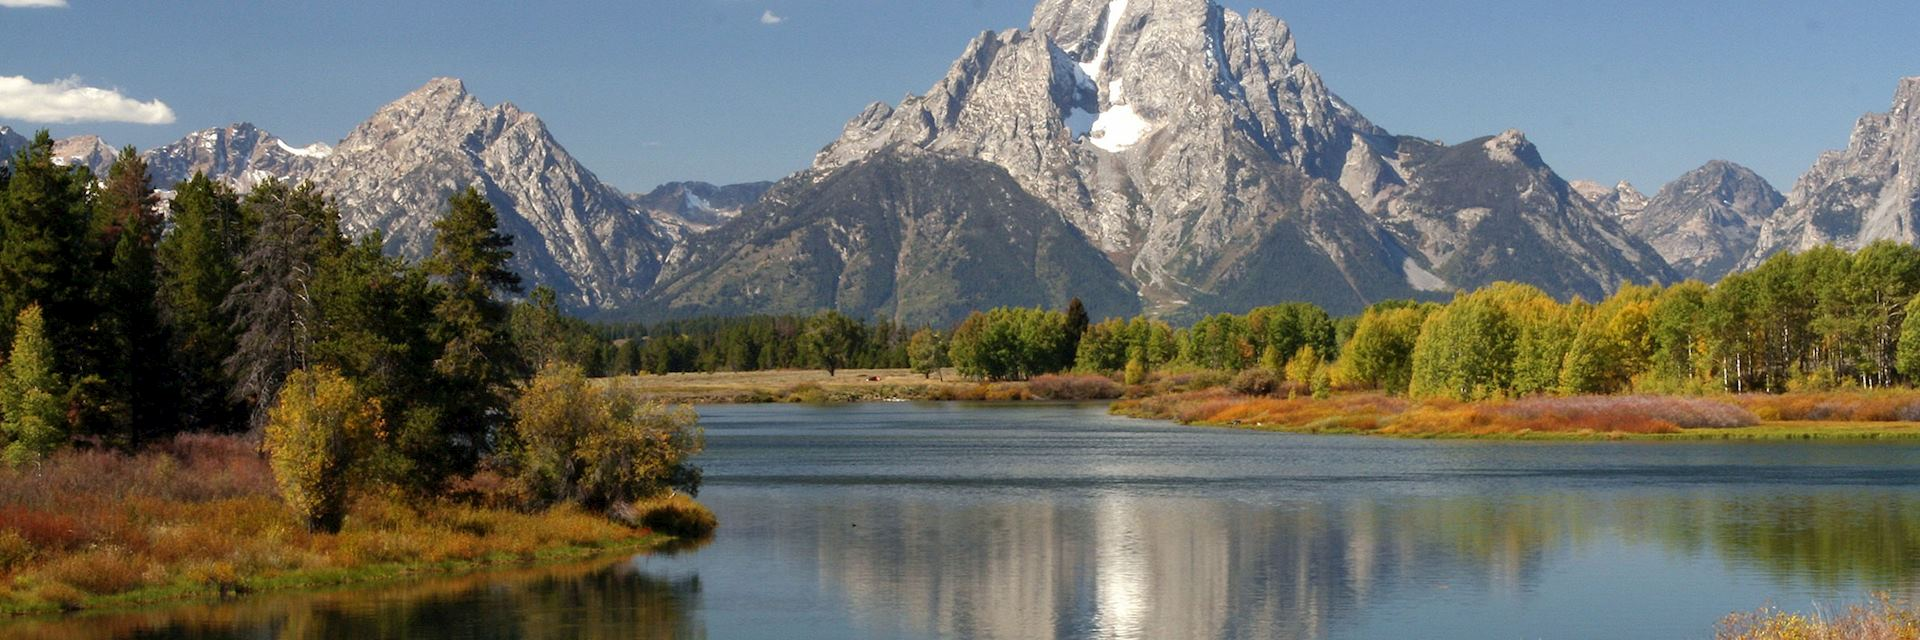 Oxbow Bend, Grand Teton National Park, the USA